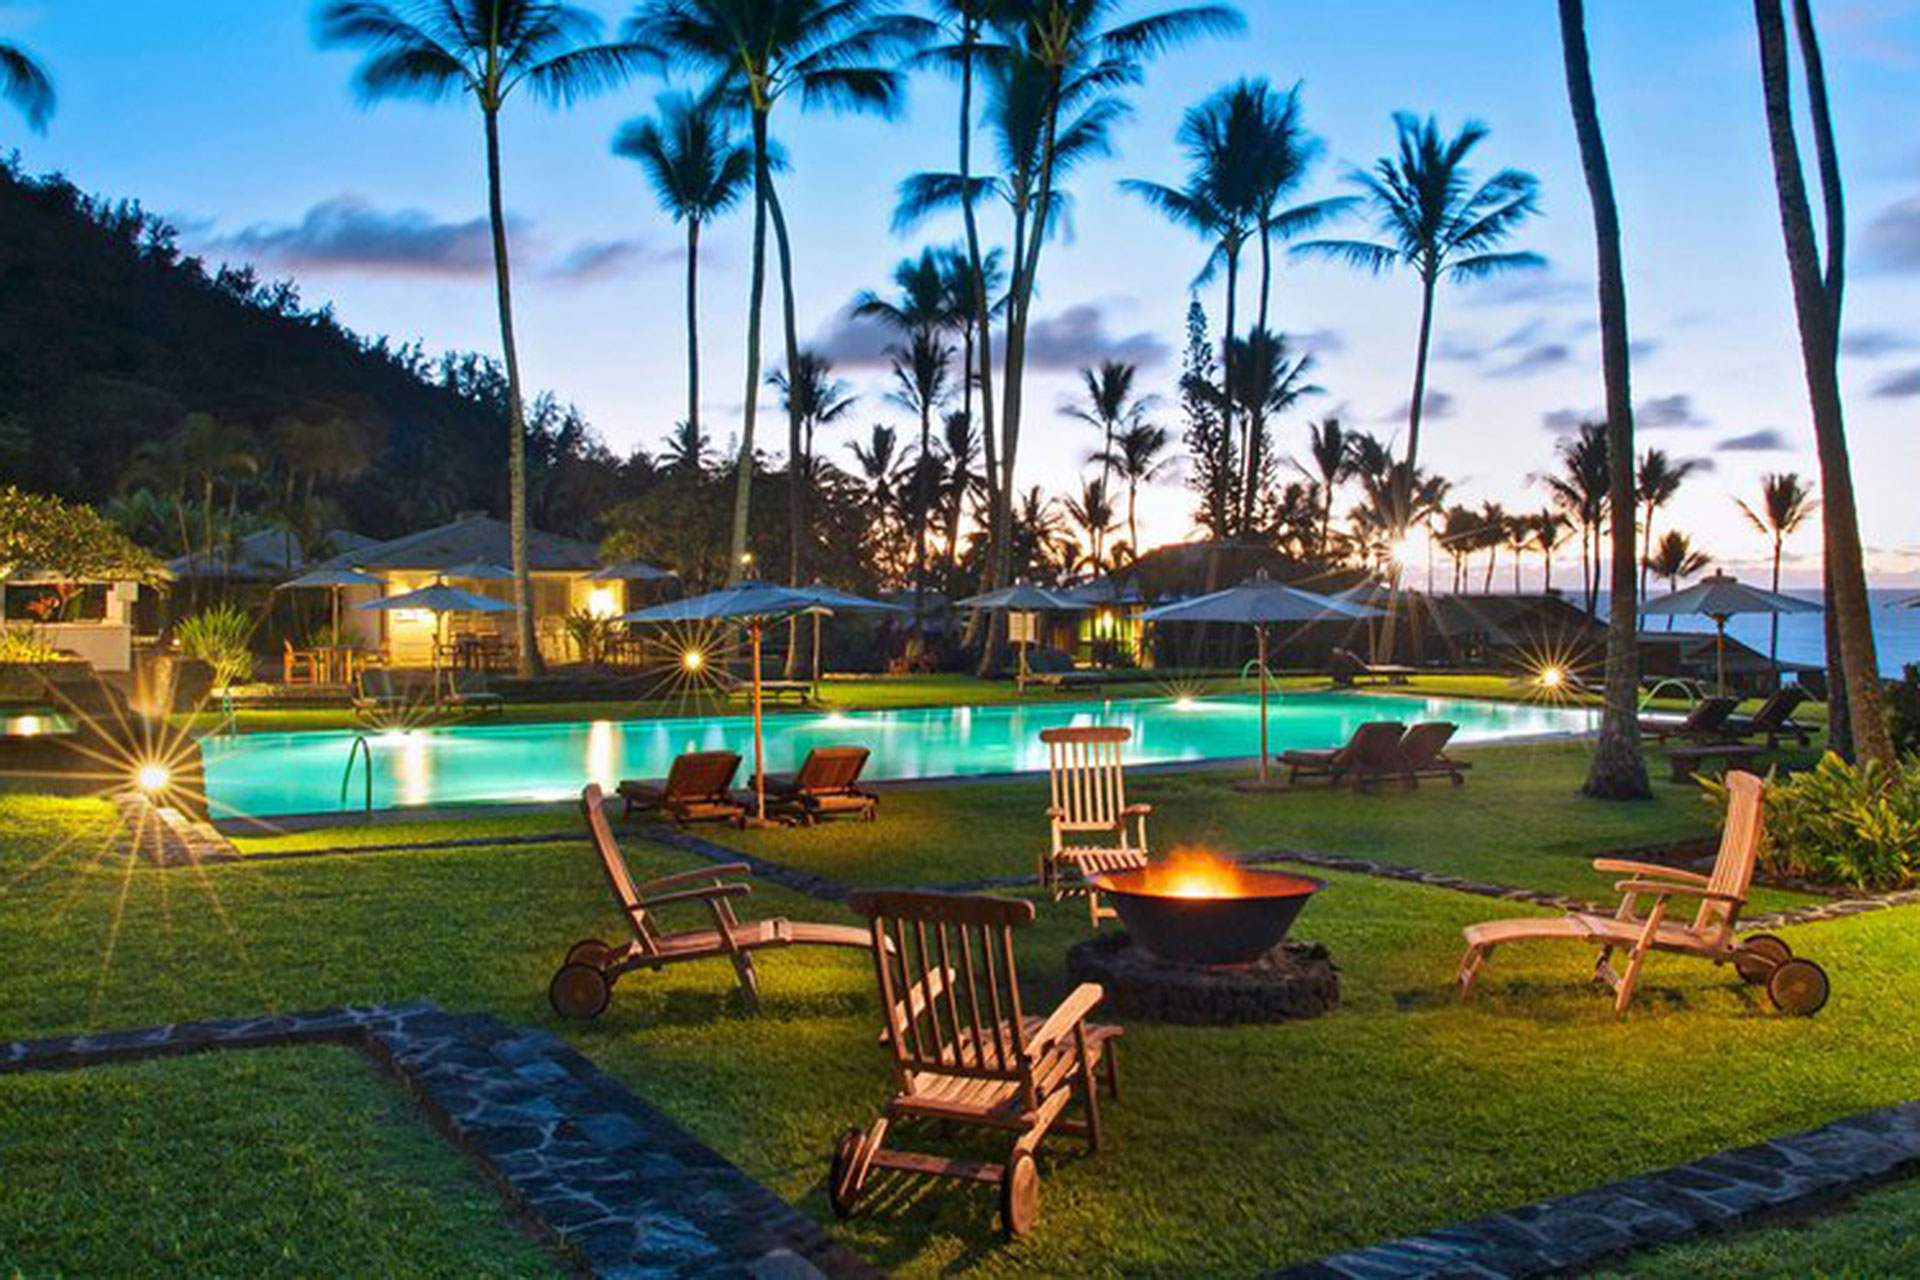 Hawaii Christmas Vacation Packages 2020 All Inclusive Hawaii Deals: The Top Resorts for Families | Family